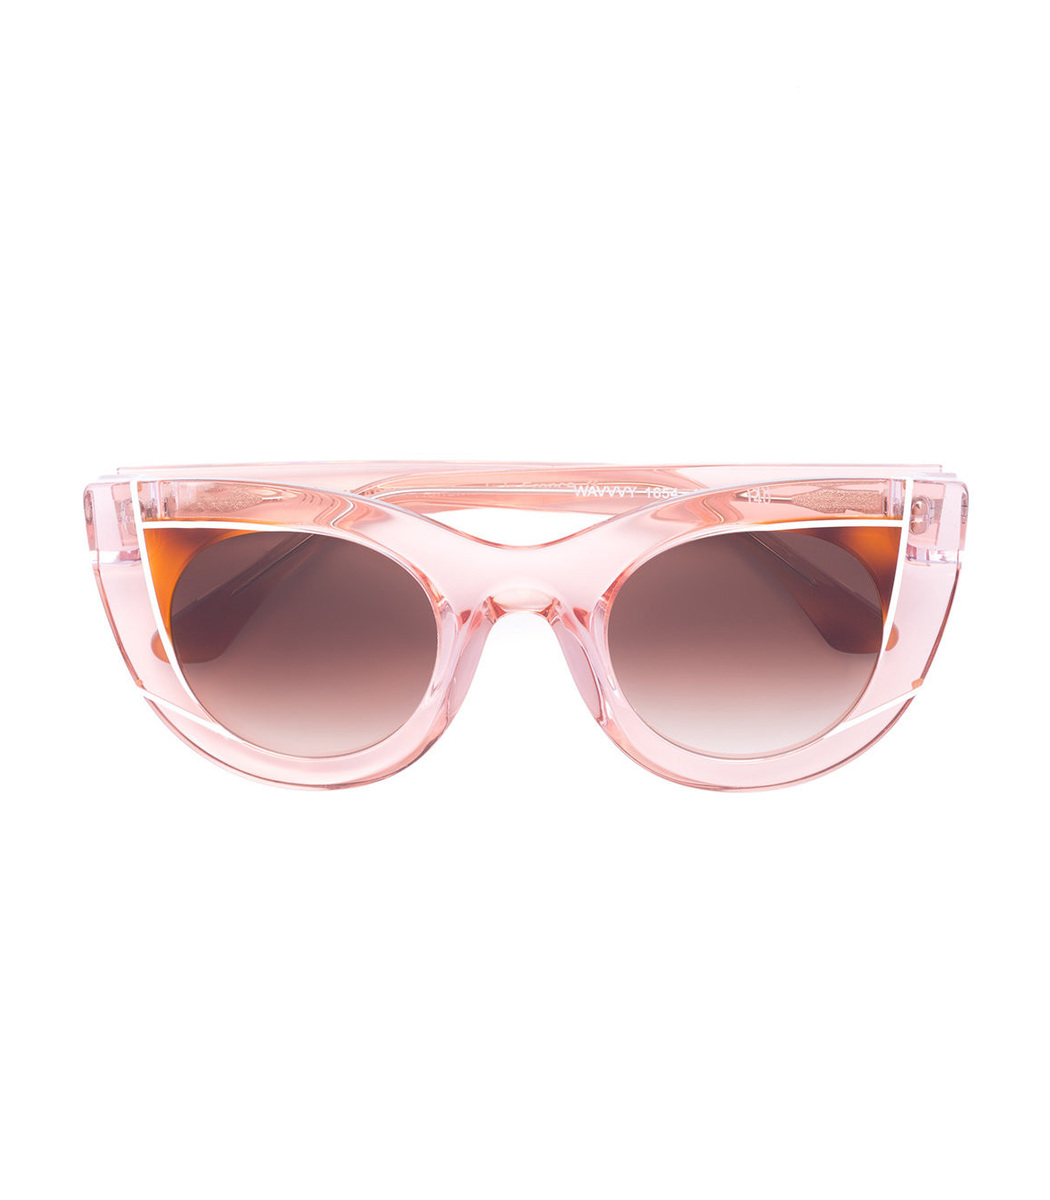 Thierry Lasry Peach Pink WAVVVY 1654 Sunglasses